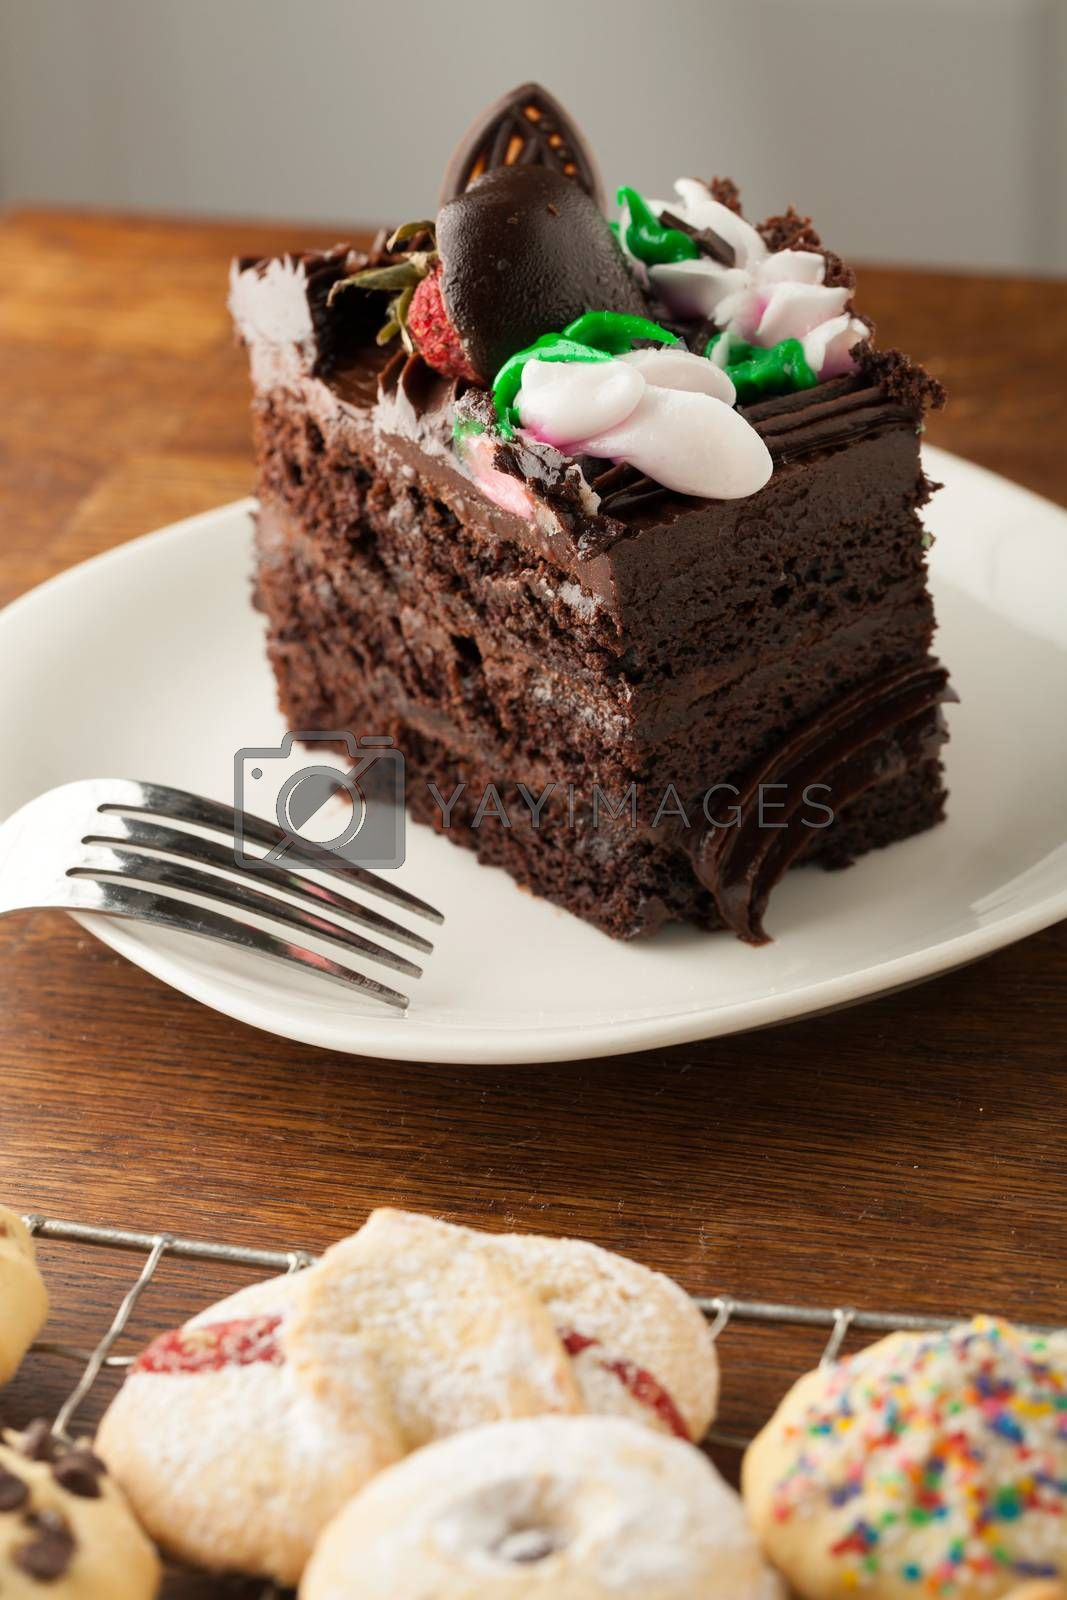 Decadent slice of chocolate cake with iced flowers and chocolate covered strawberries on a plate with a fork.